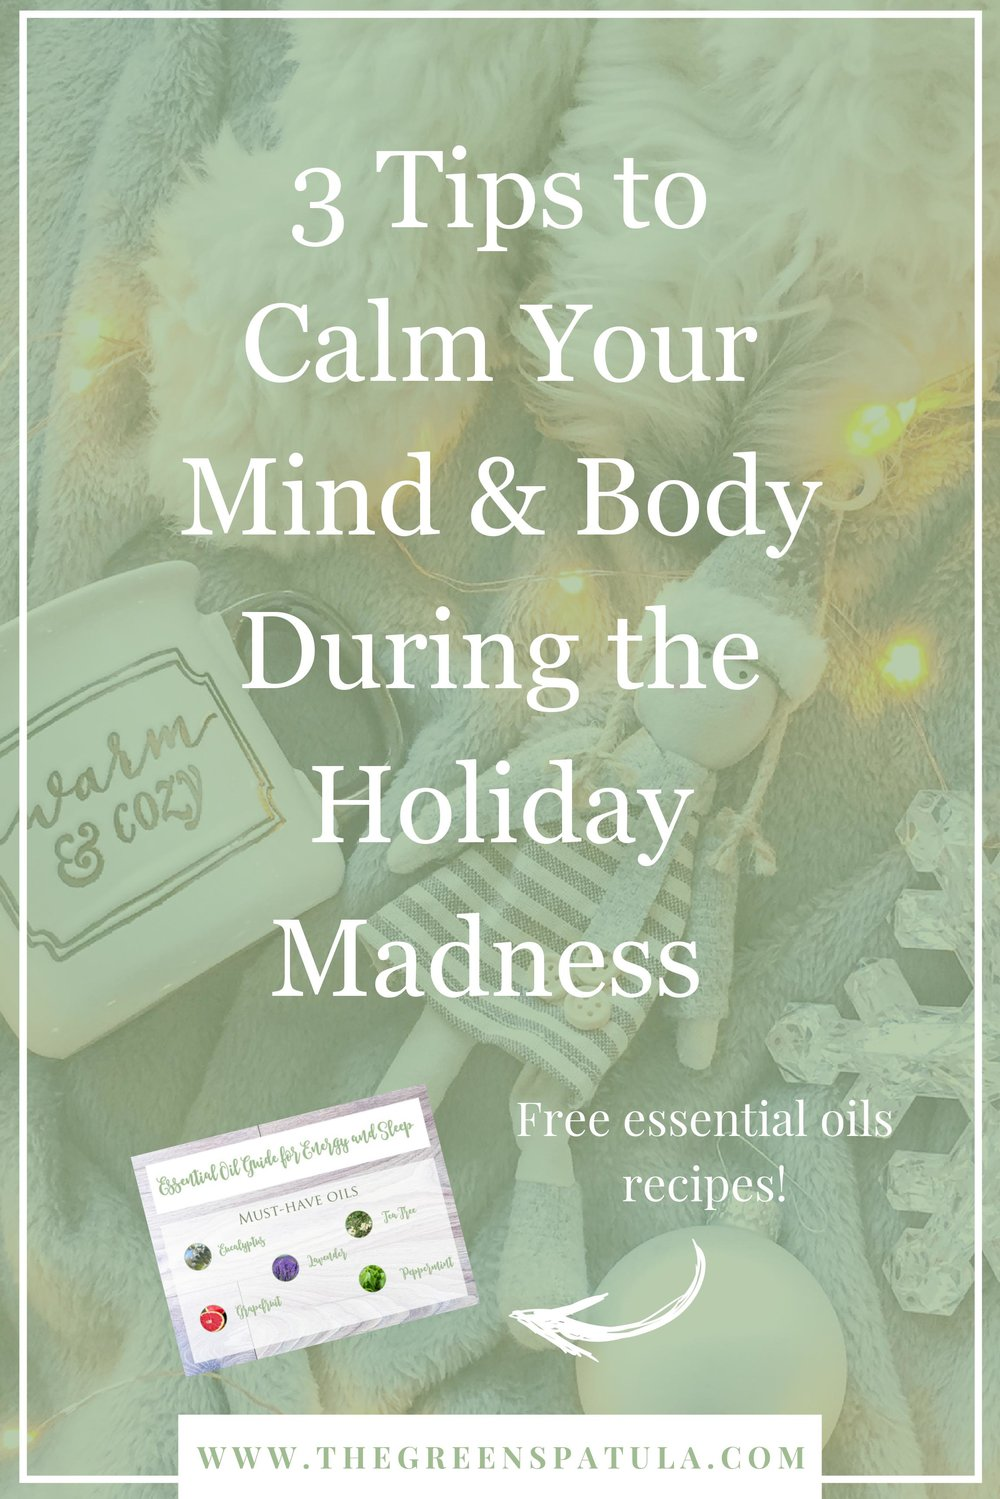 3 tips to calm your mind and body during the holiday madness. Stress less with these 3 simple self care tips to help you stay relax during traveling, gift shopping, tree decorating, too much family time, and cooking. Plus, learn about 5 different oils that can help you relax and download a free essential oil recipe card! #naturalbeauty #selfcare #stress #yoga #mindfulness #essentialoils #holistichealth